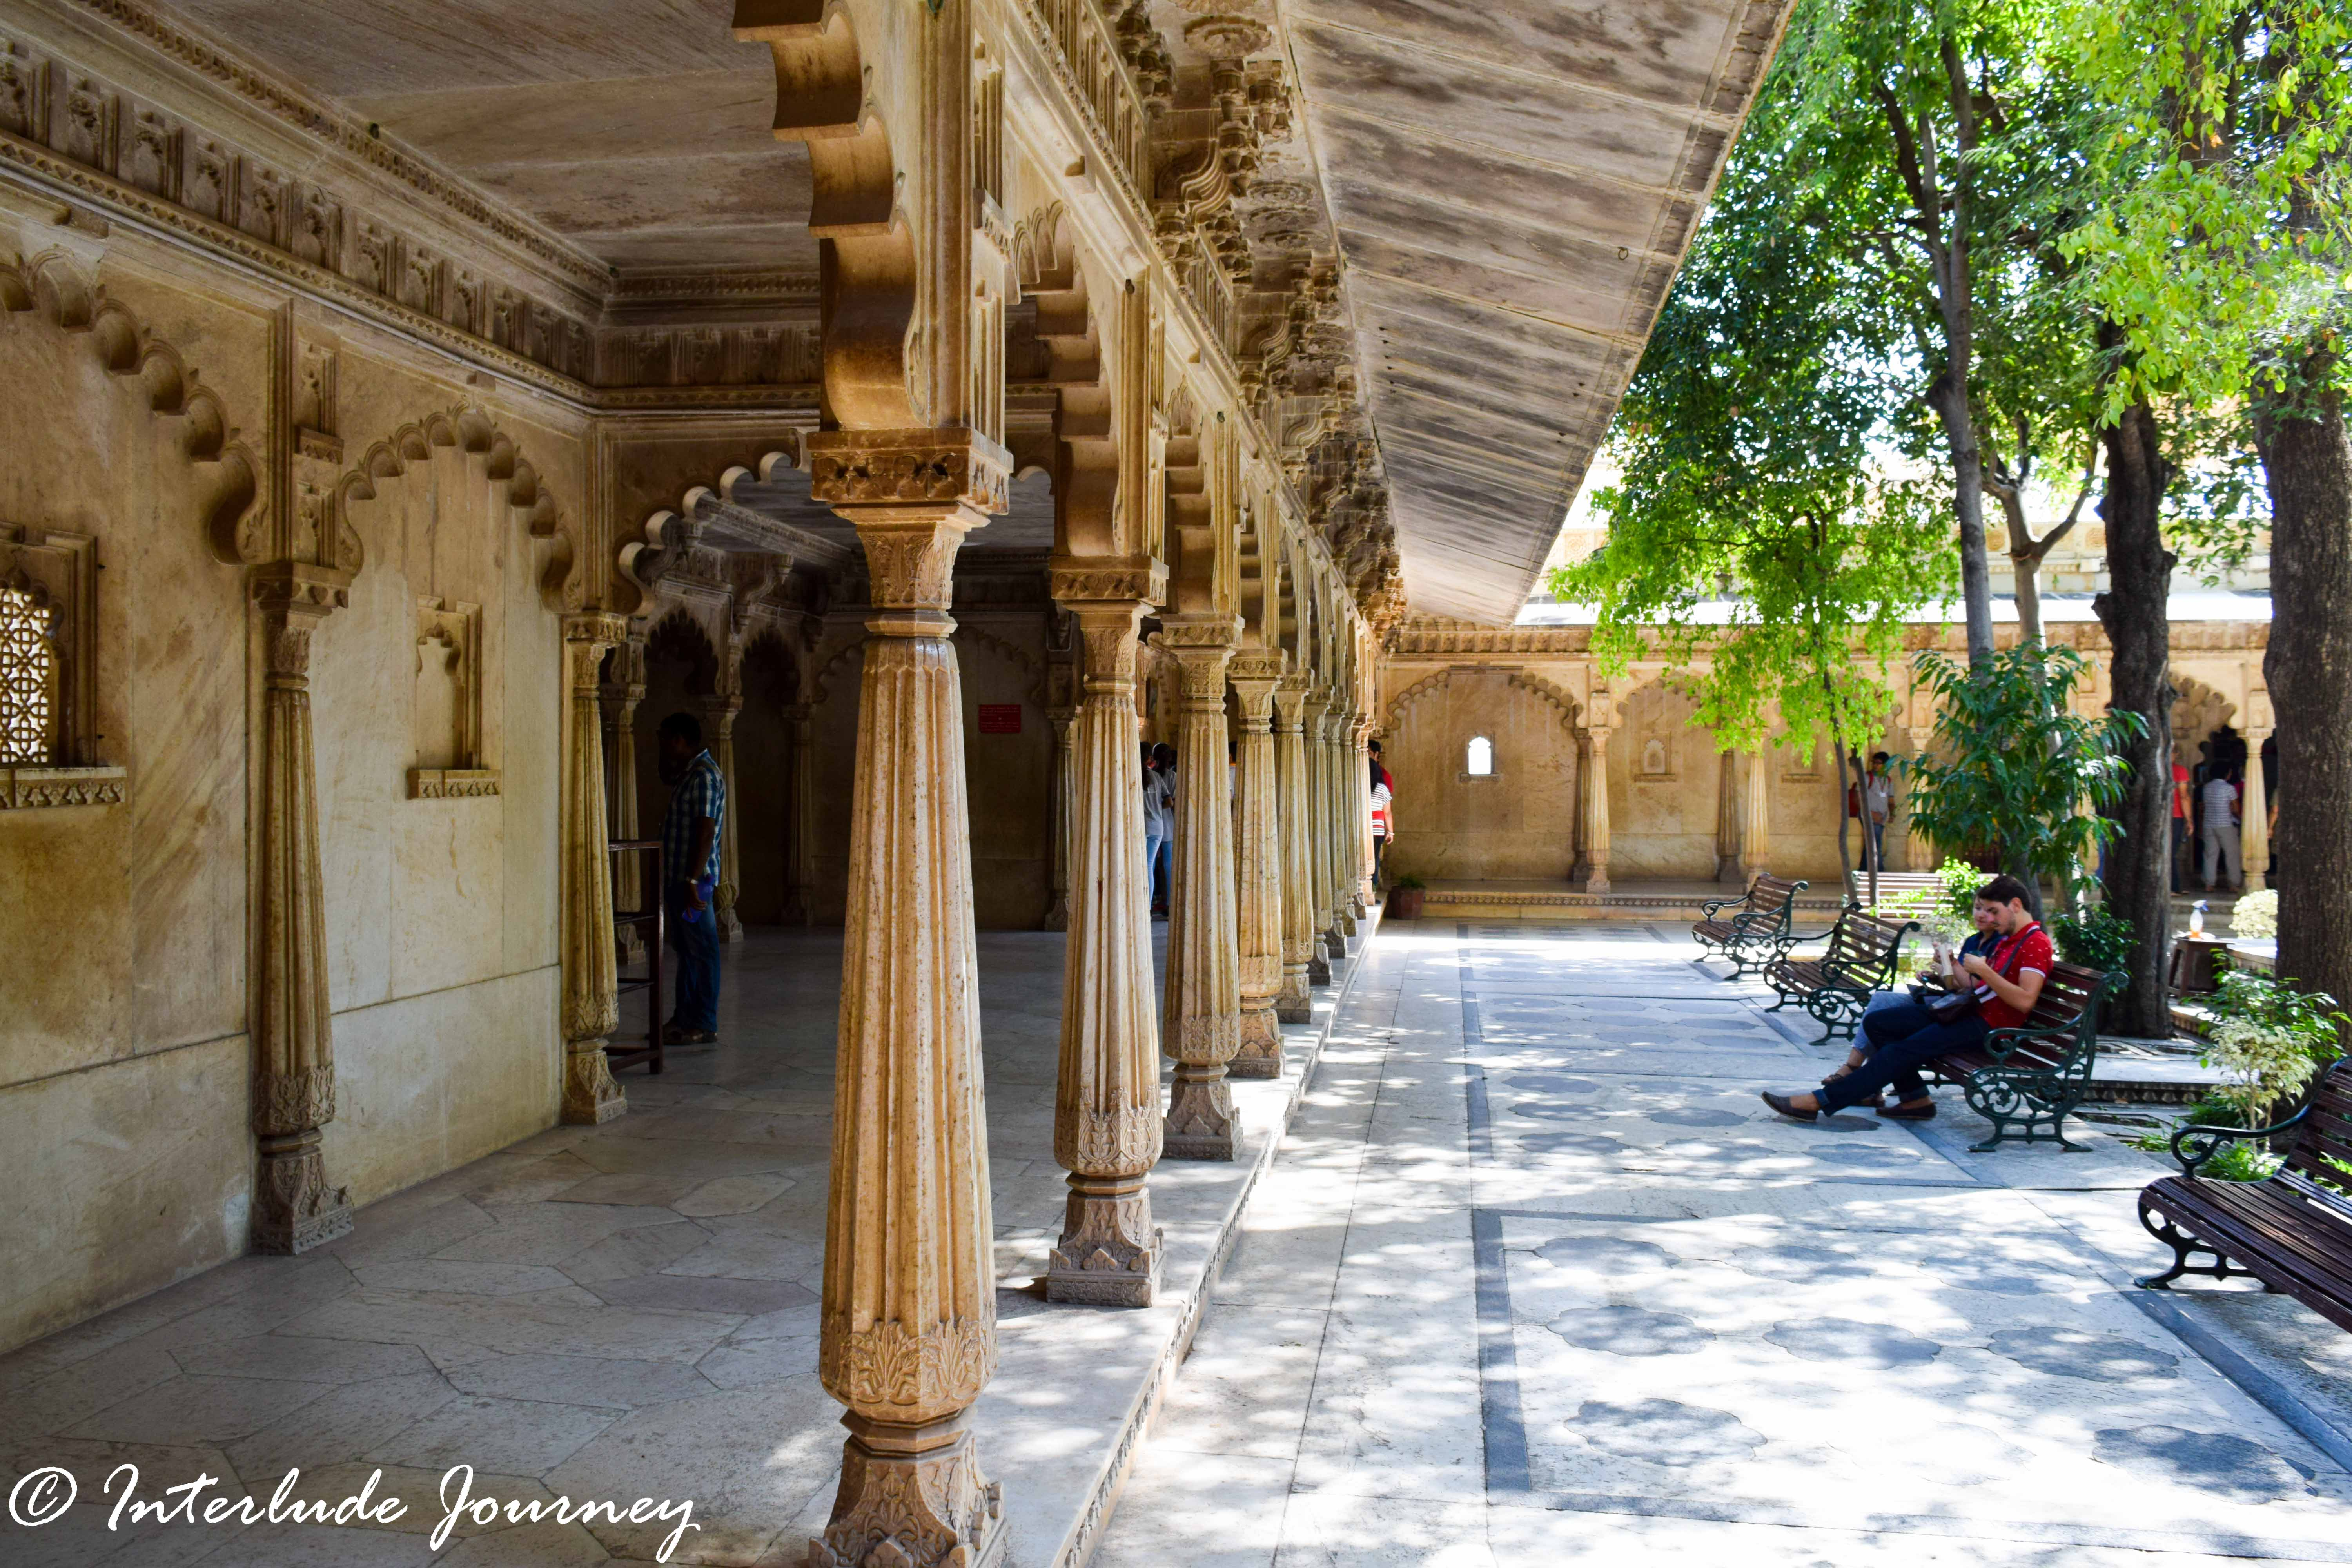 One of the courtyards in the higher structures of the Udaipur City Palace